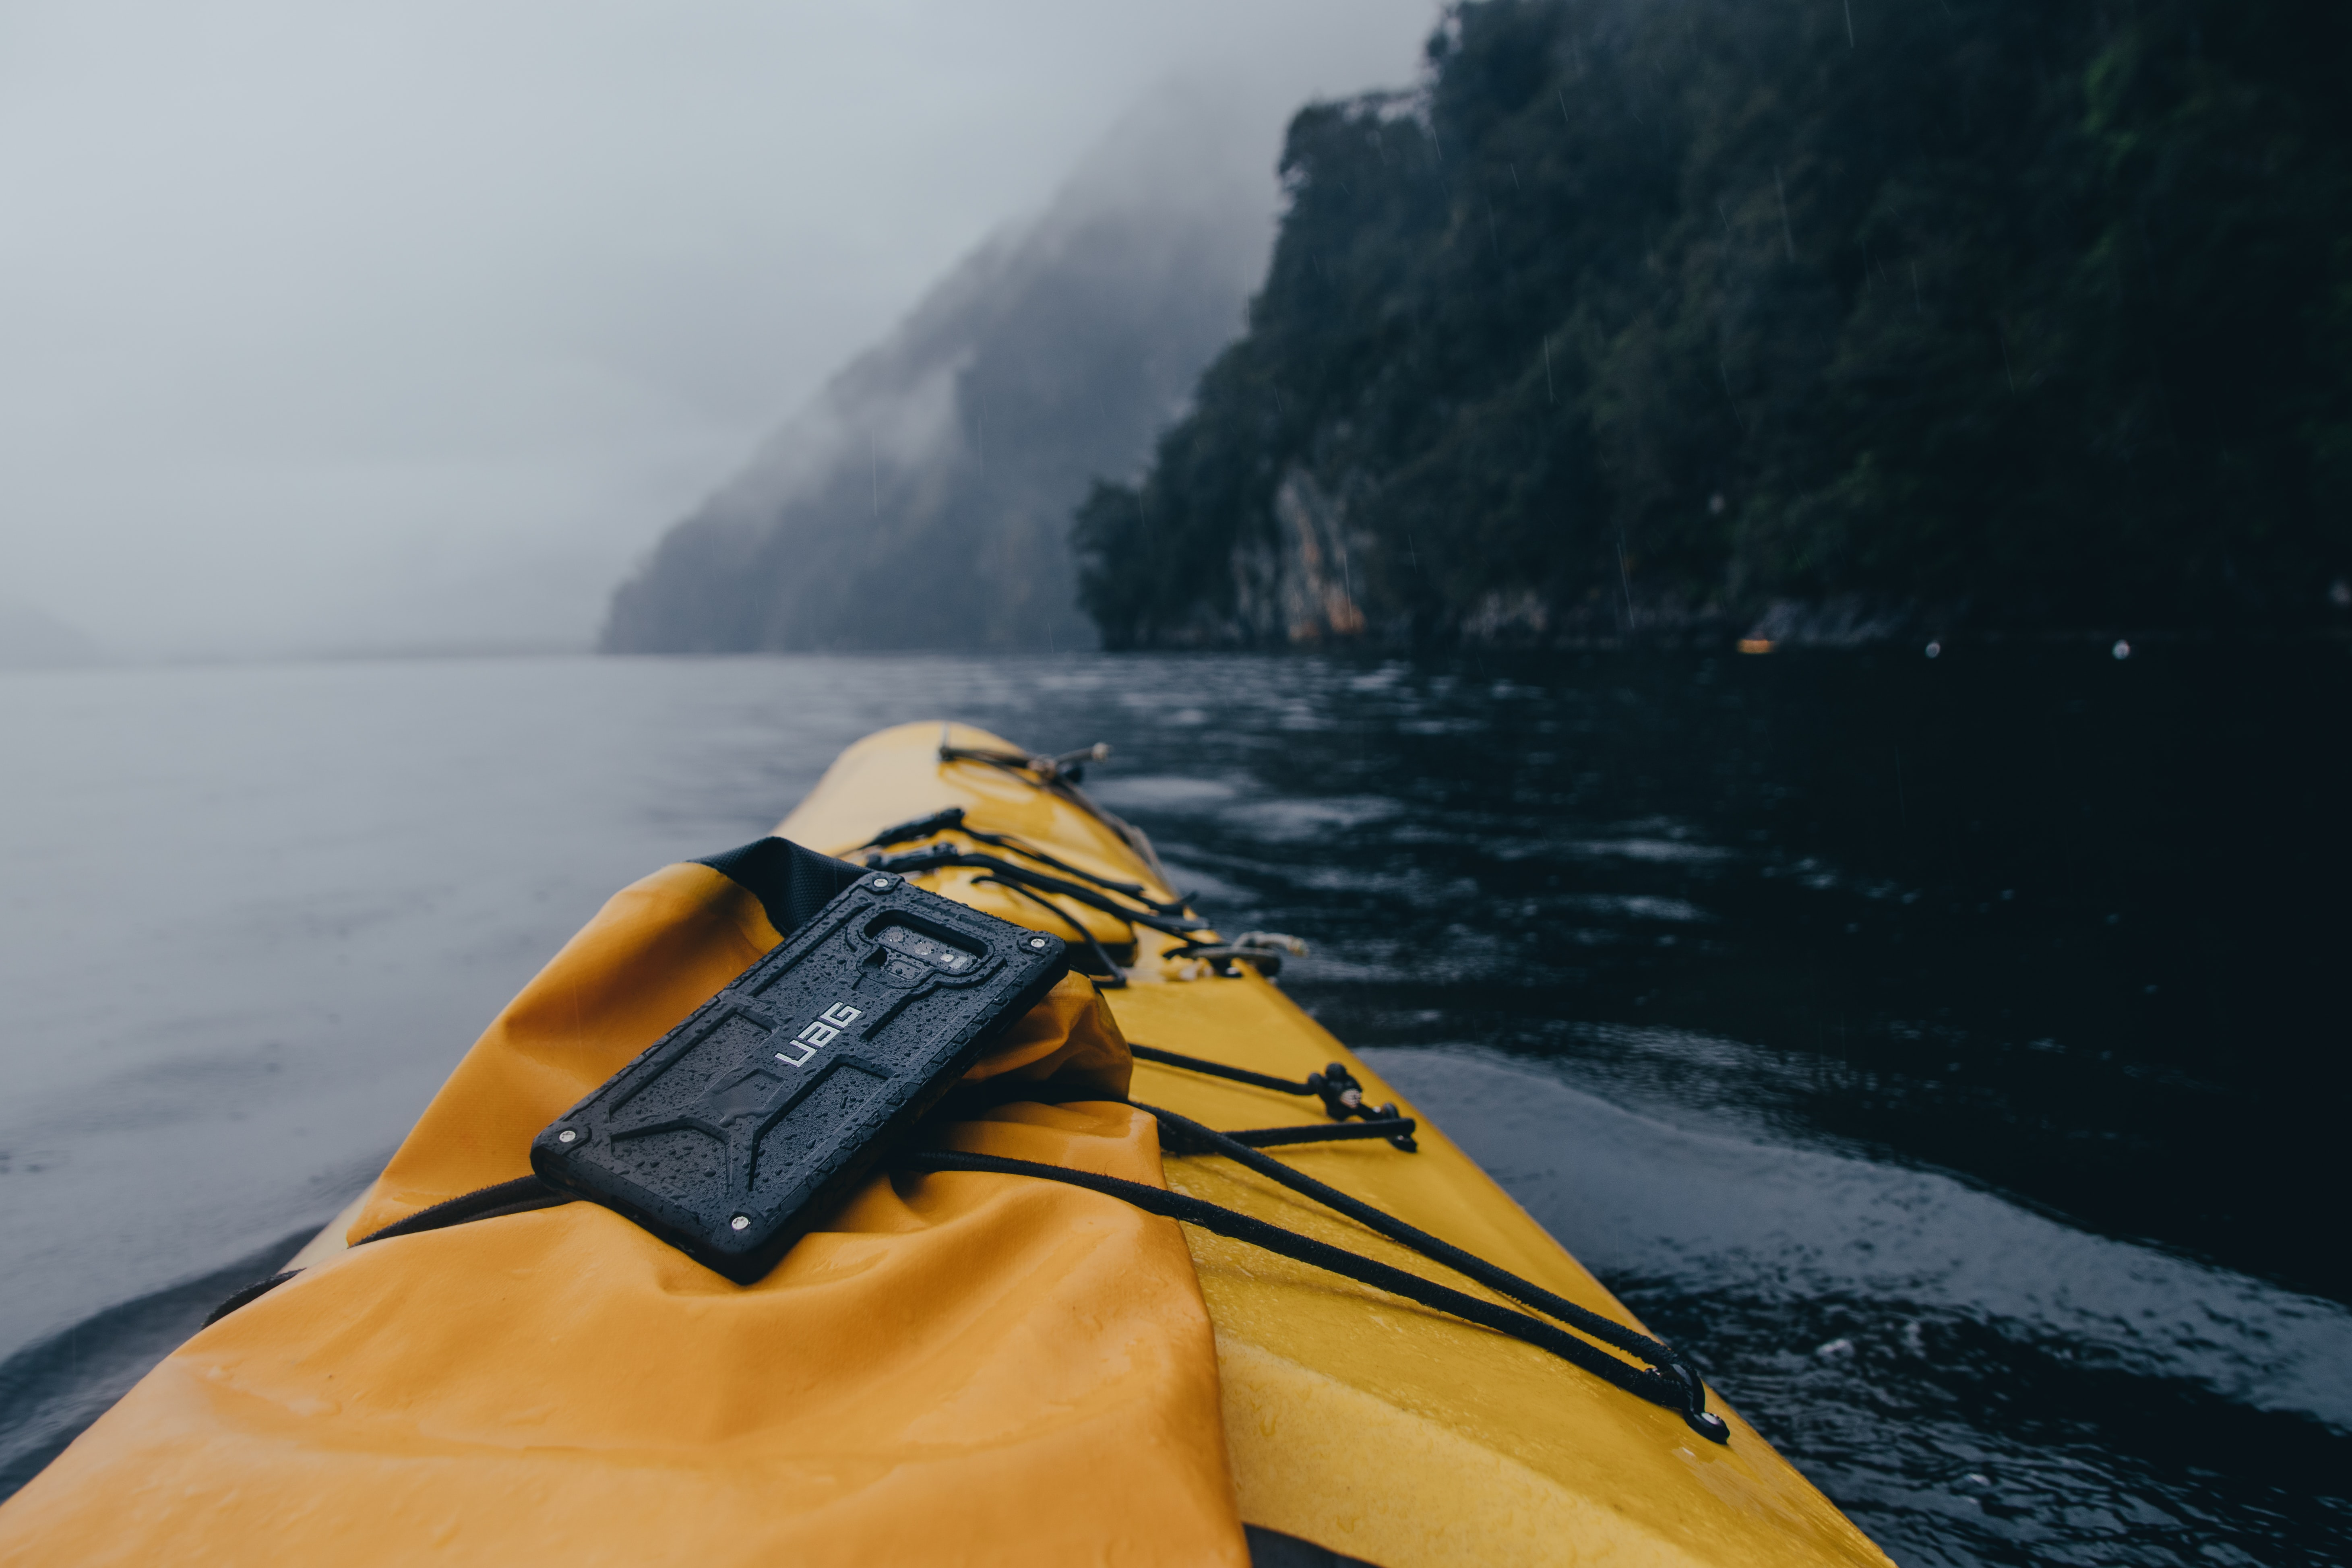 black smartphone with case on yellow kayak on water during daytime